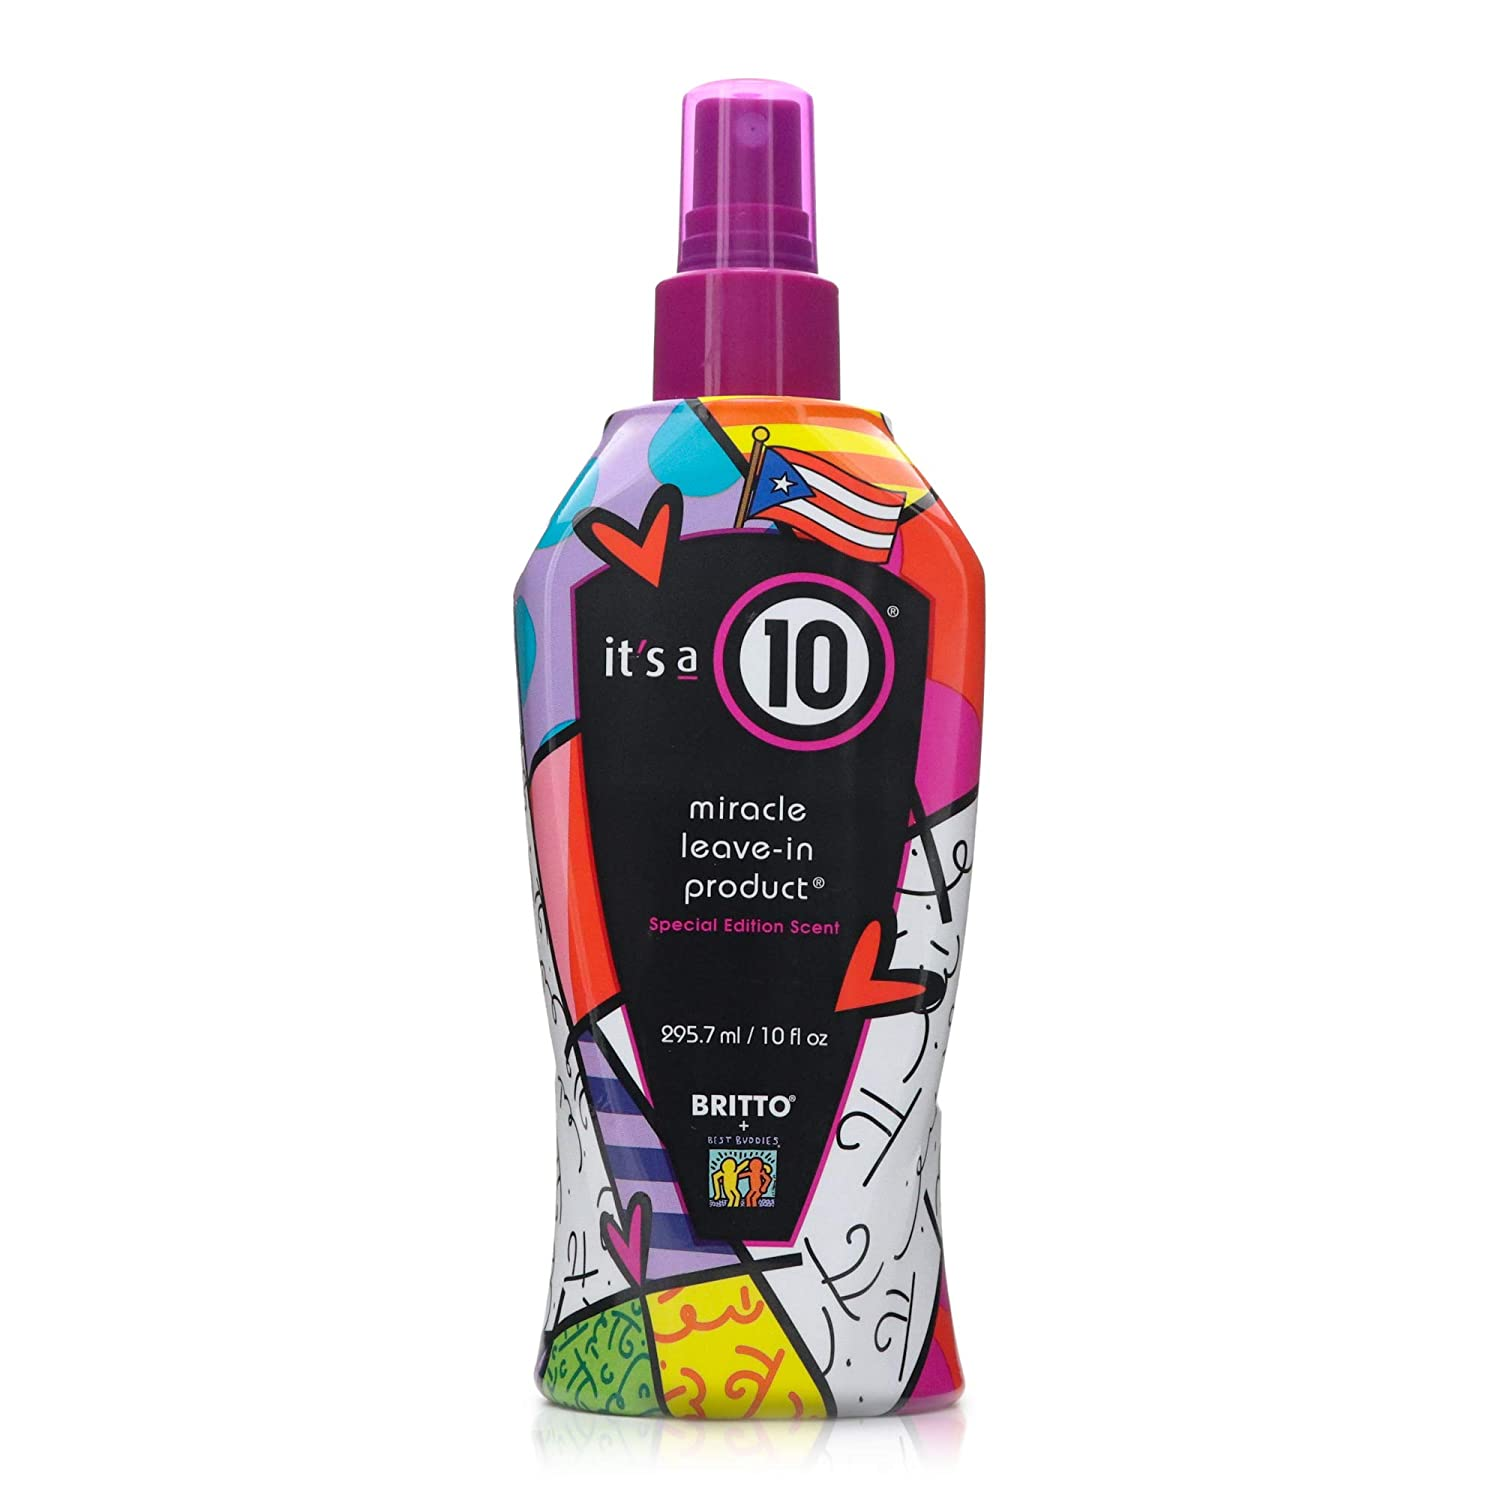 Its a 10 Haircare Limited Edition Miracle Leave-in Product, Designed by Romero Britto, 10 fl. oz.